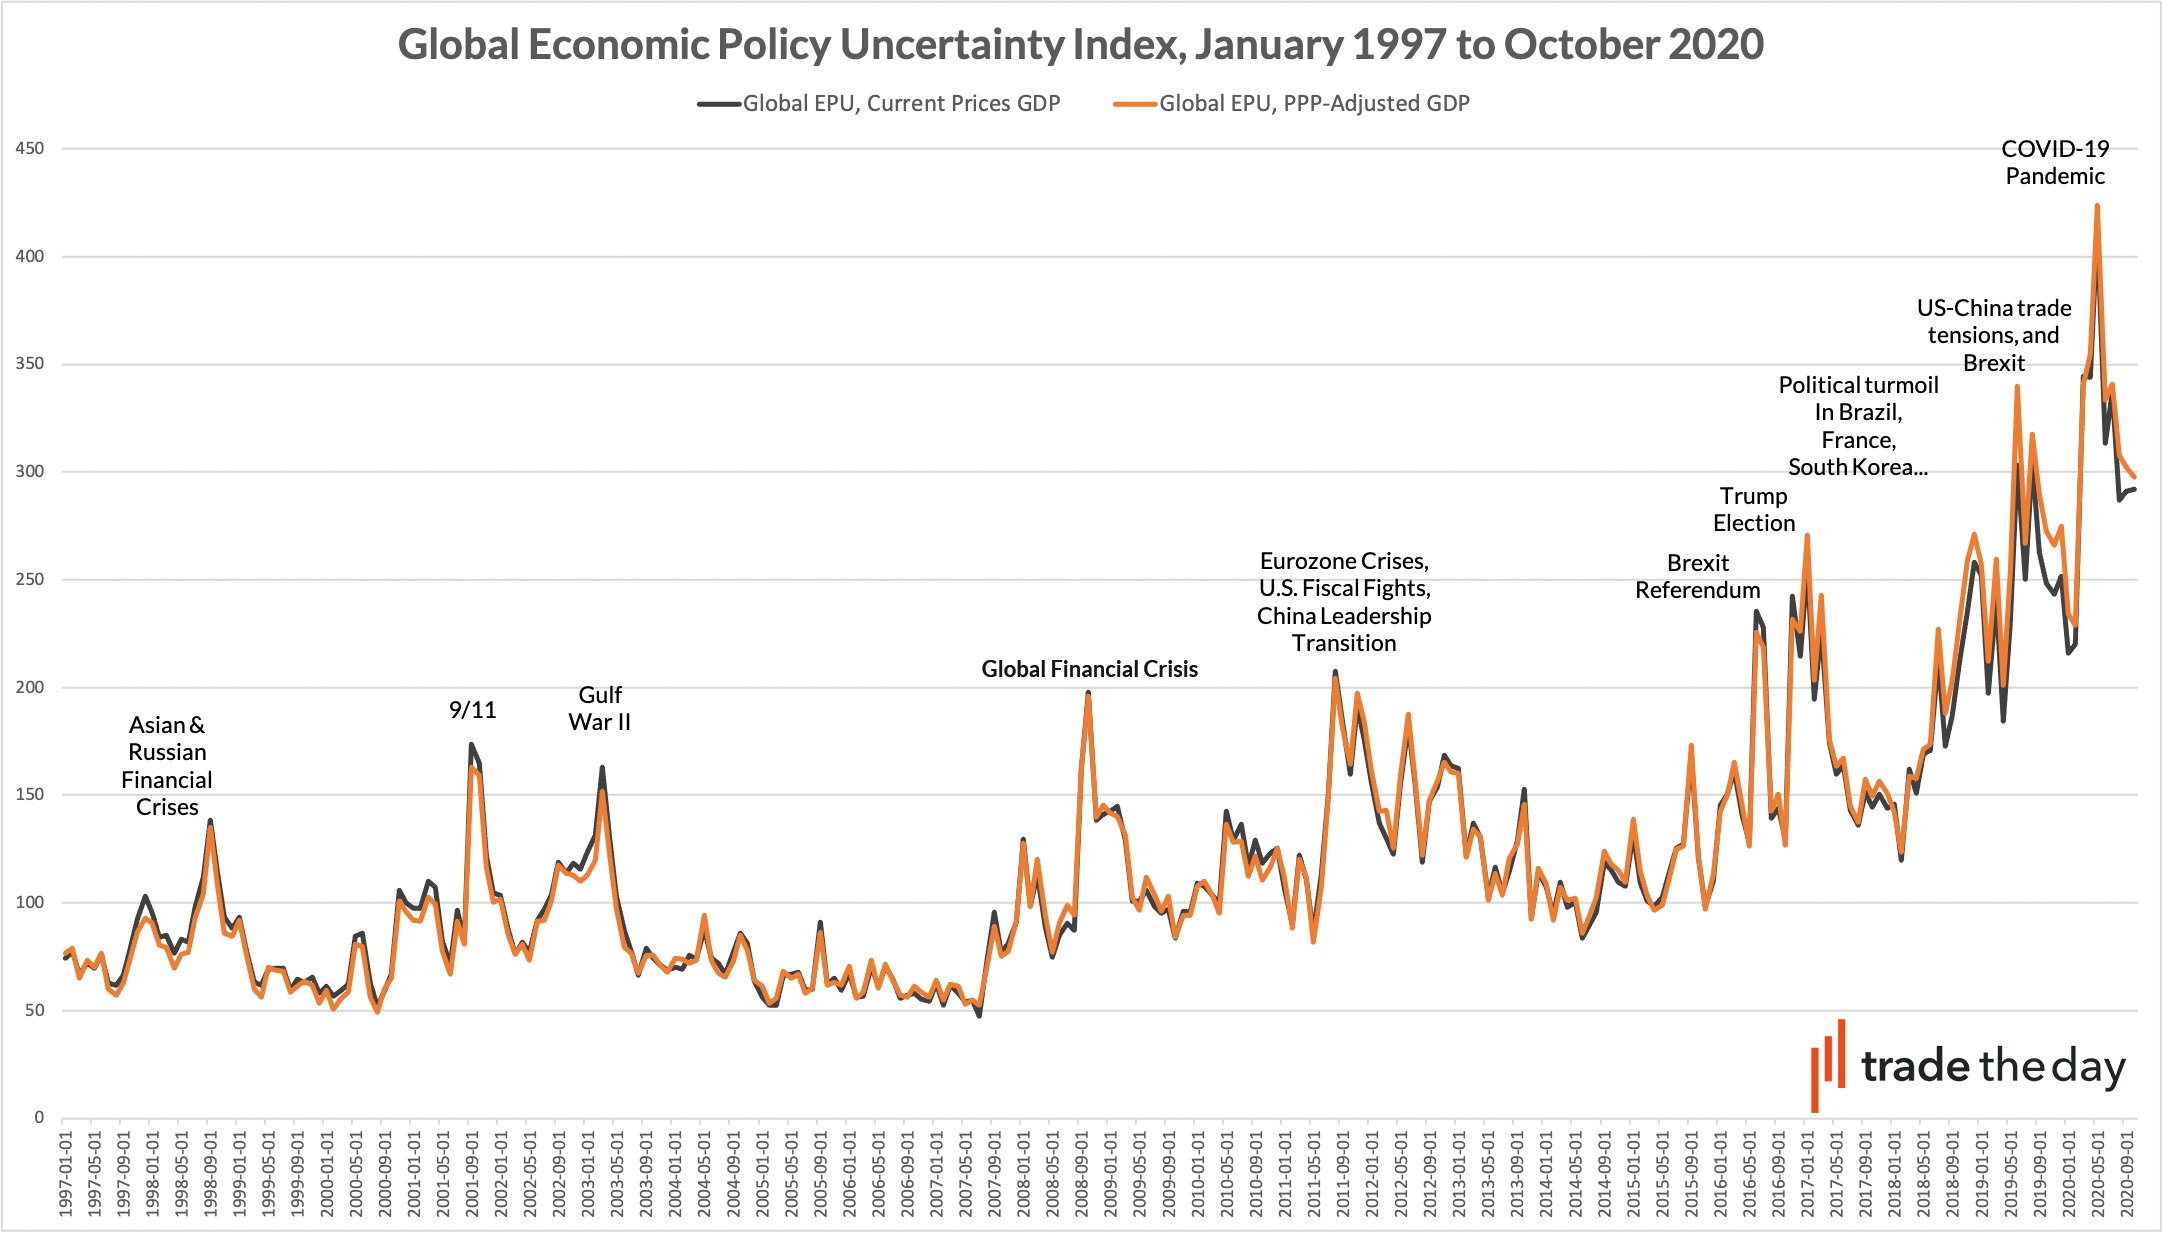 Global Economic Policy Uncertainty Index, October 2020